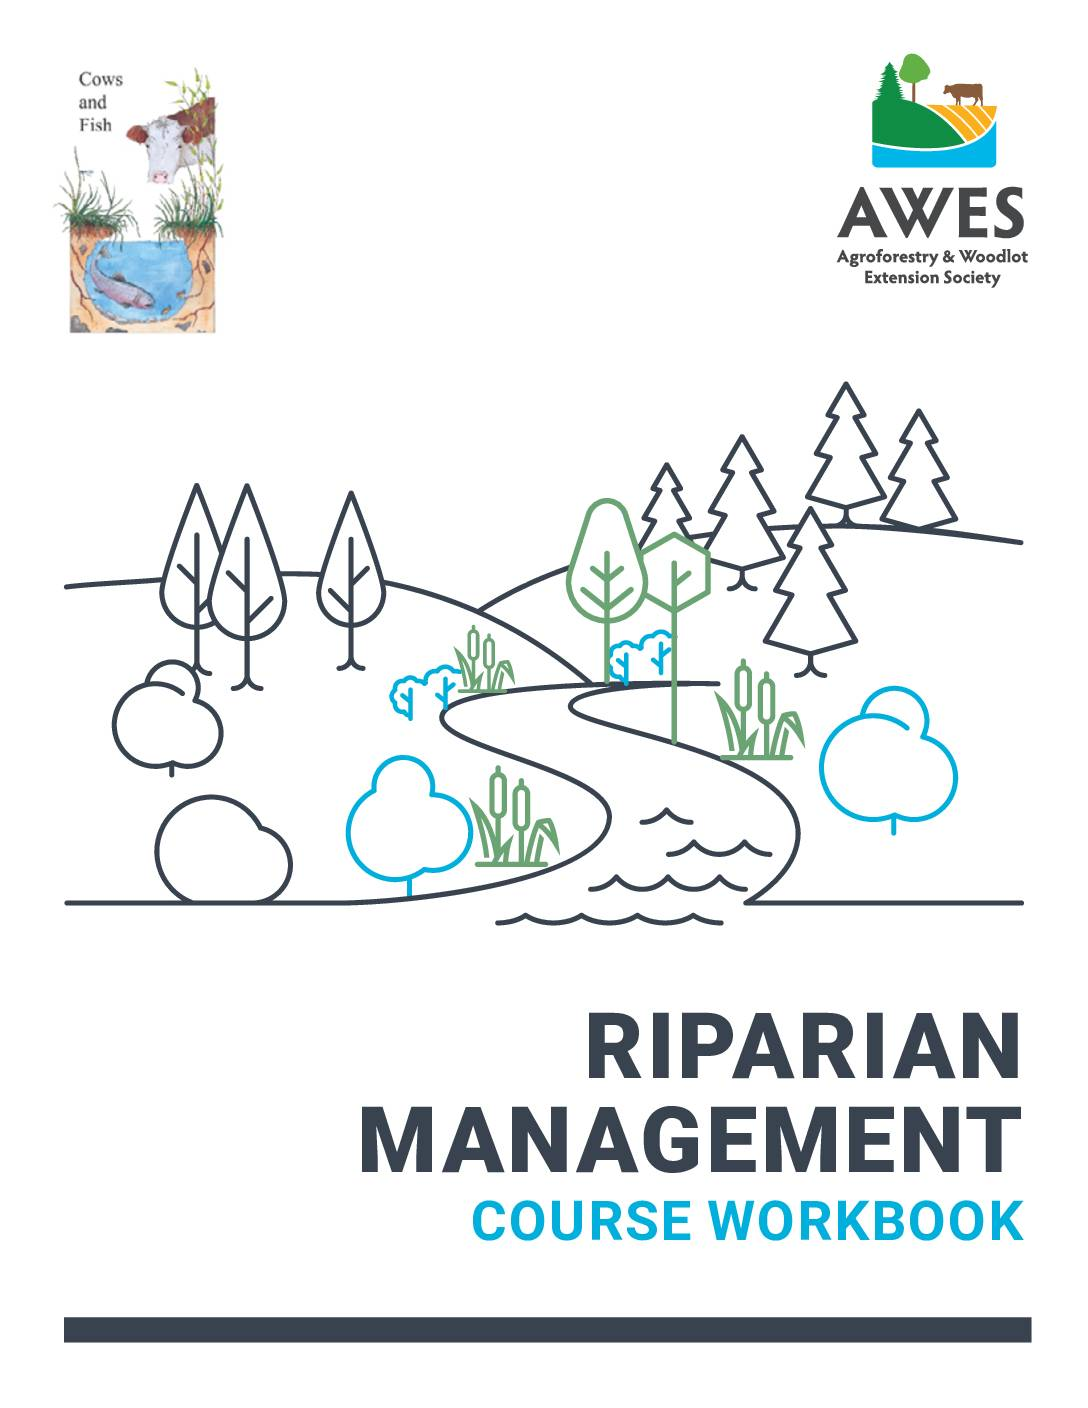 Riparian Management Course Workbook